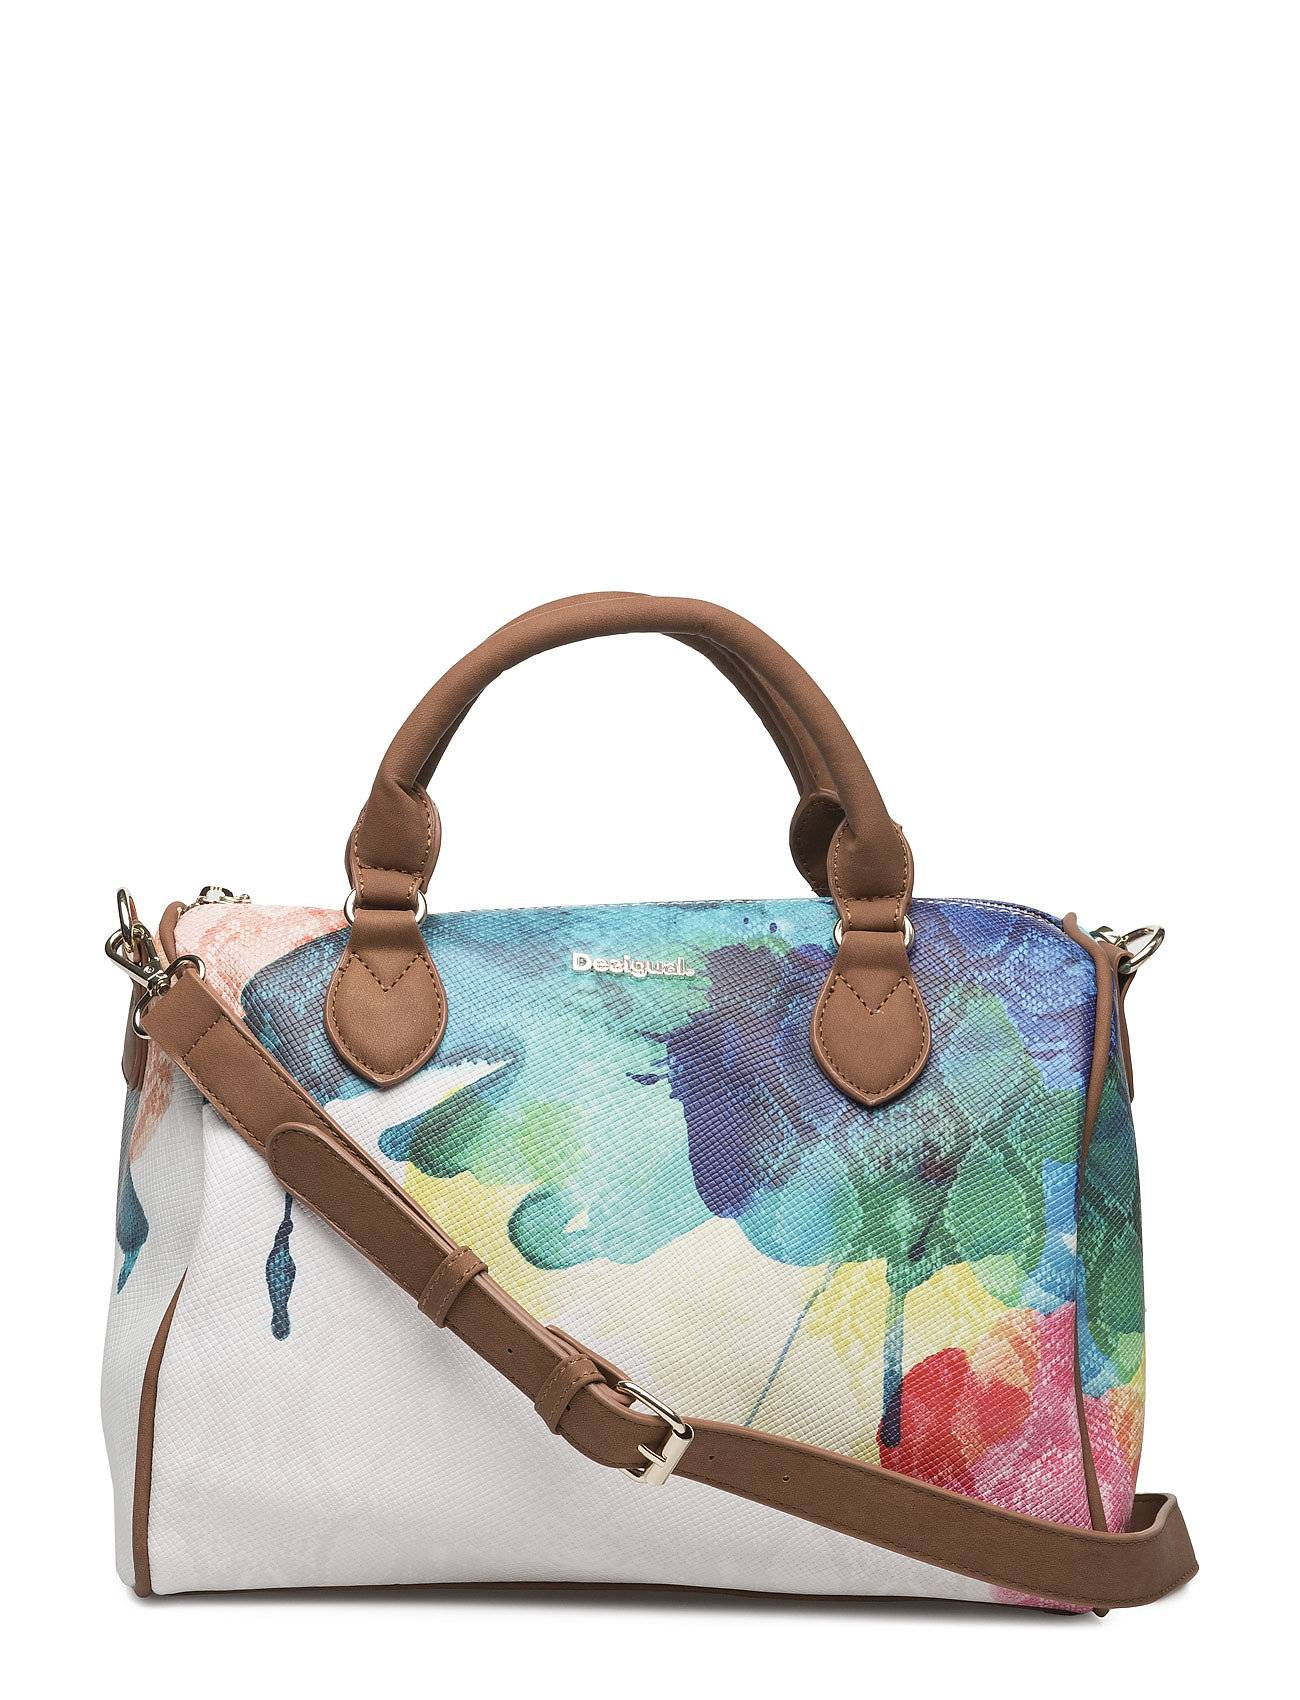 Desigual Accessories Bols Bowling Aquarelle